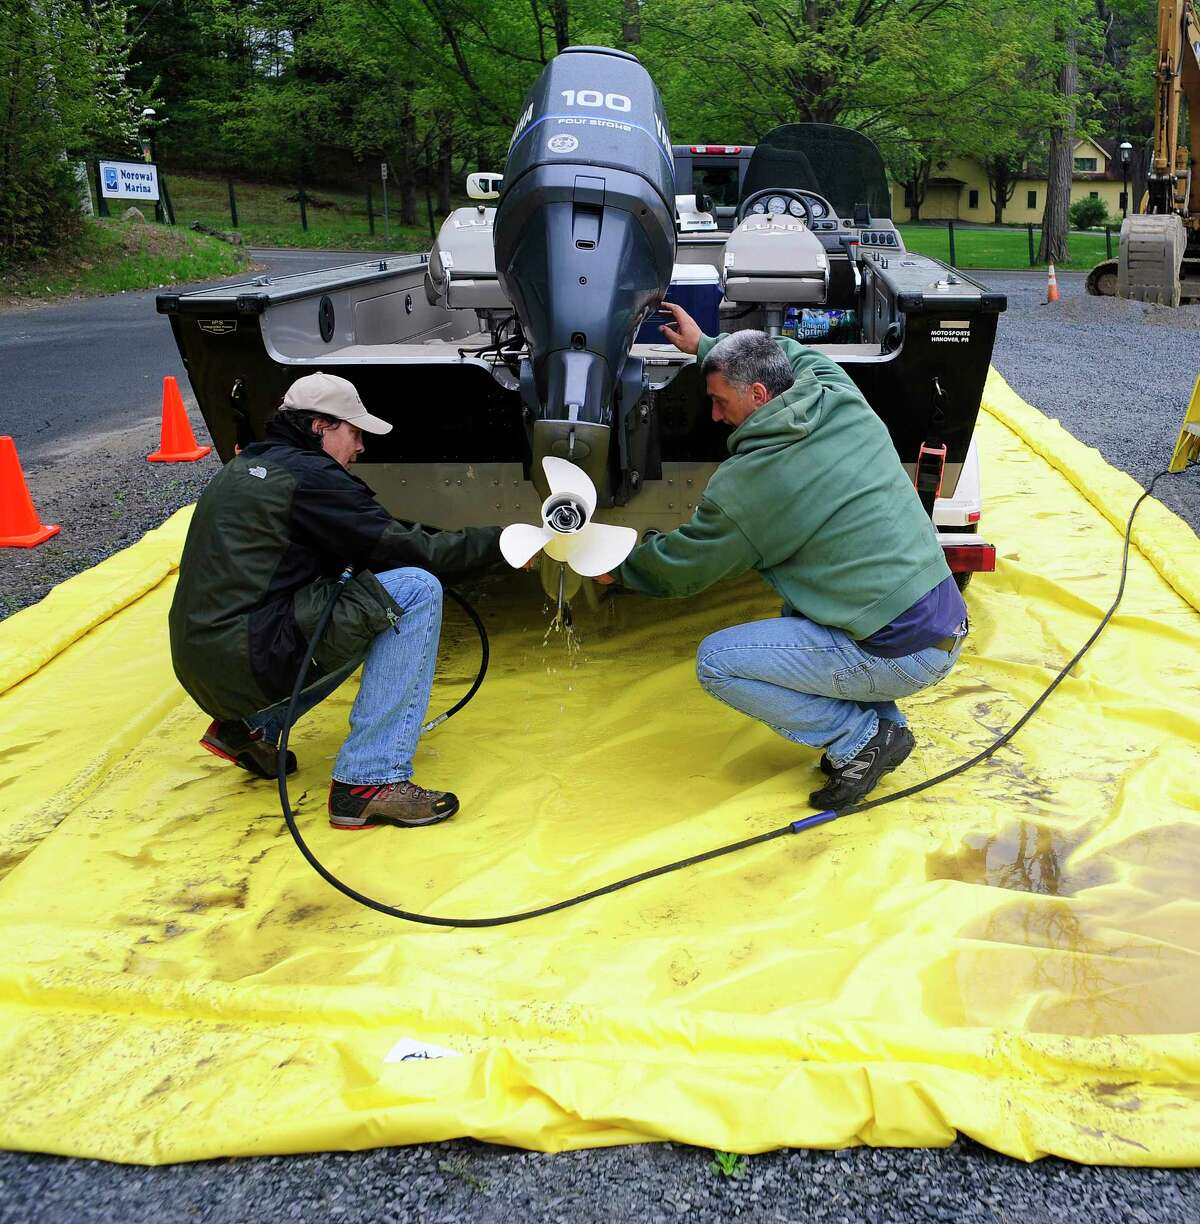 As boating numbers soared in Adirondack Park lakes during the pandemic, inspections also surged and prevented spread of invasive species. (Paul Buckowski / Times Union)